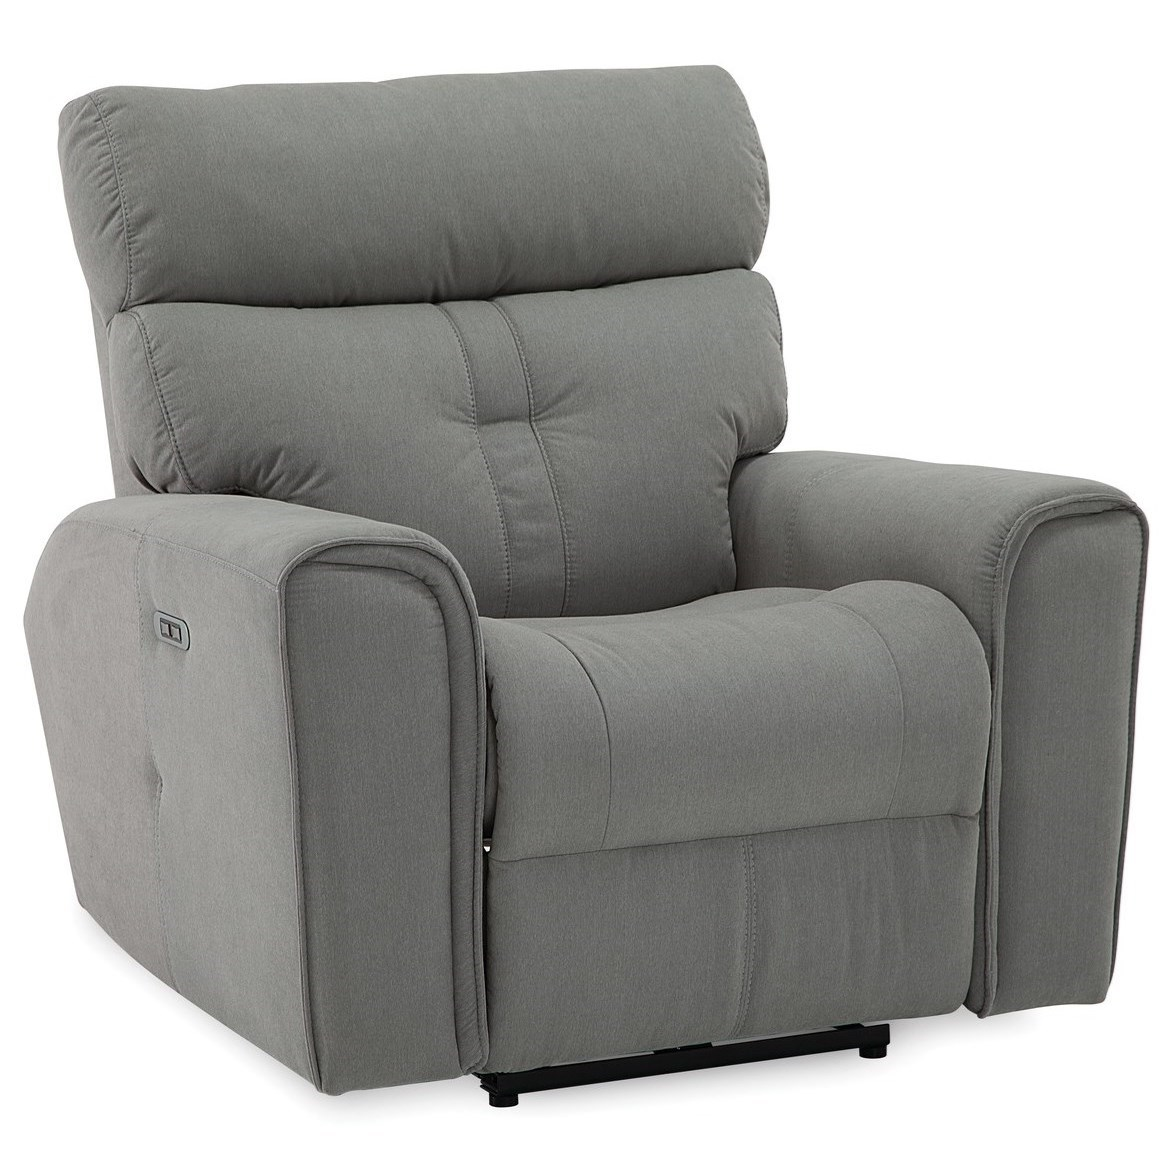 Acacia Wallhugger Power Recliner with Power HR by Palliser at Michael Alan Furniture & Design